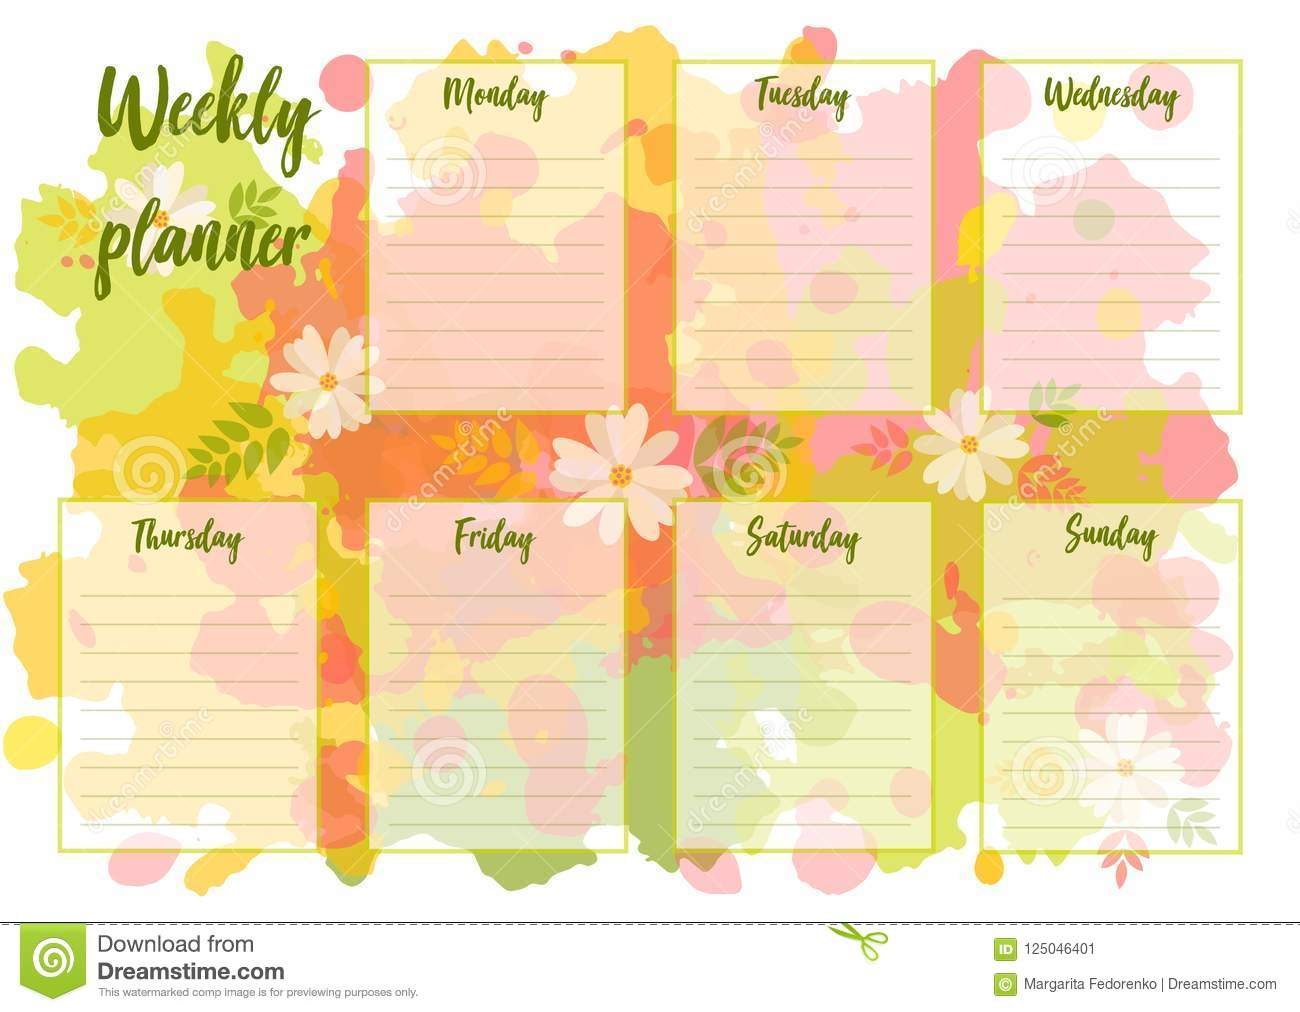 photograph relating to Cute Weekly Planners titled Weekly planner inventory vector. Case in point of progressive - 125046401